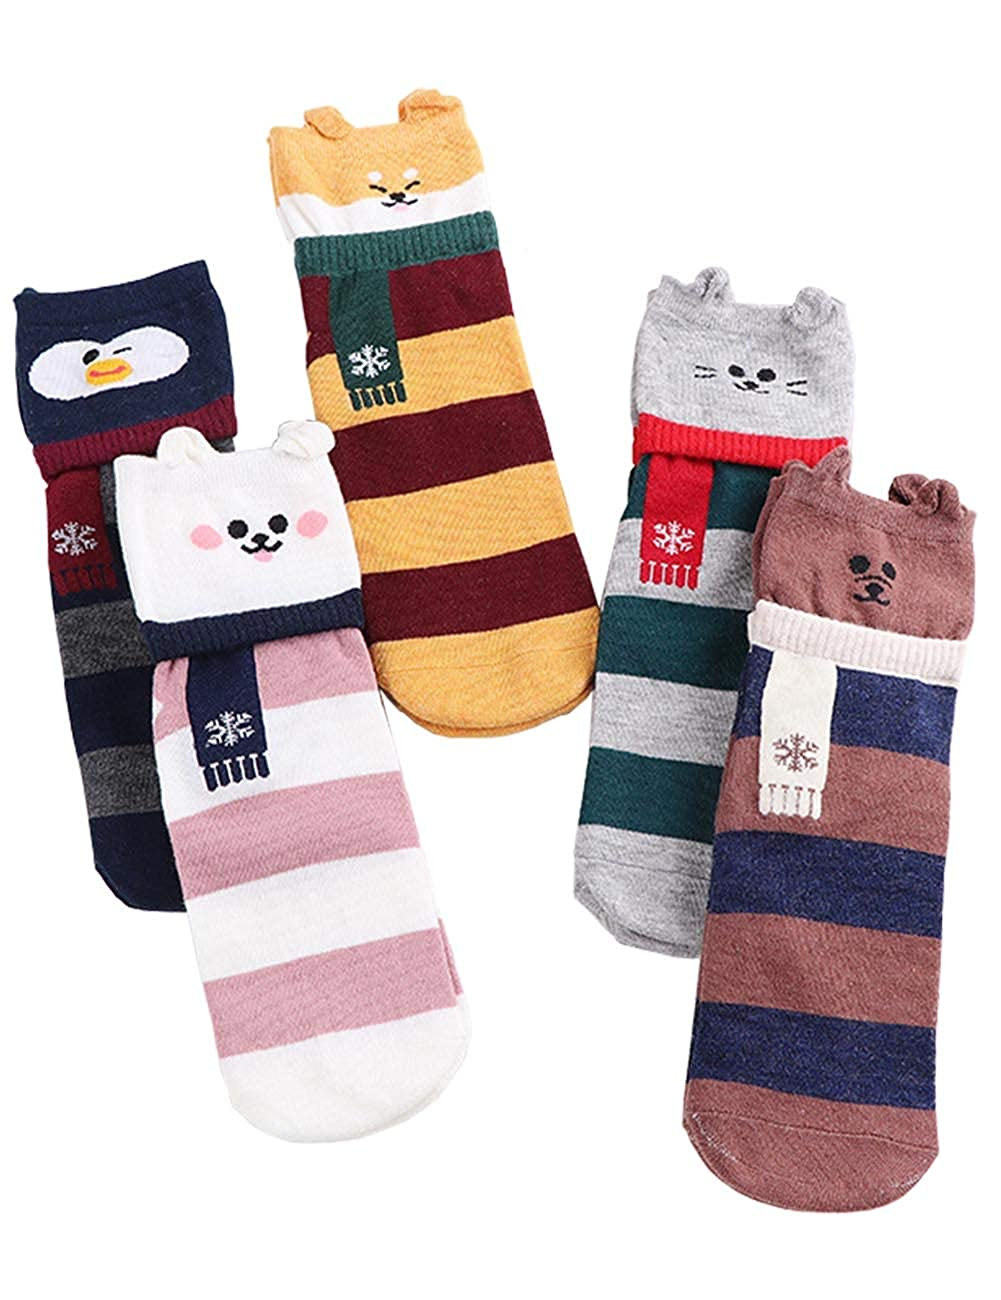 ItsYouForrever Pack of 5 Pairs Womens Cute Cat Socks Casual Cotton Animal Socks